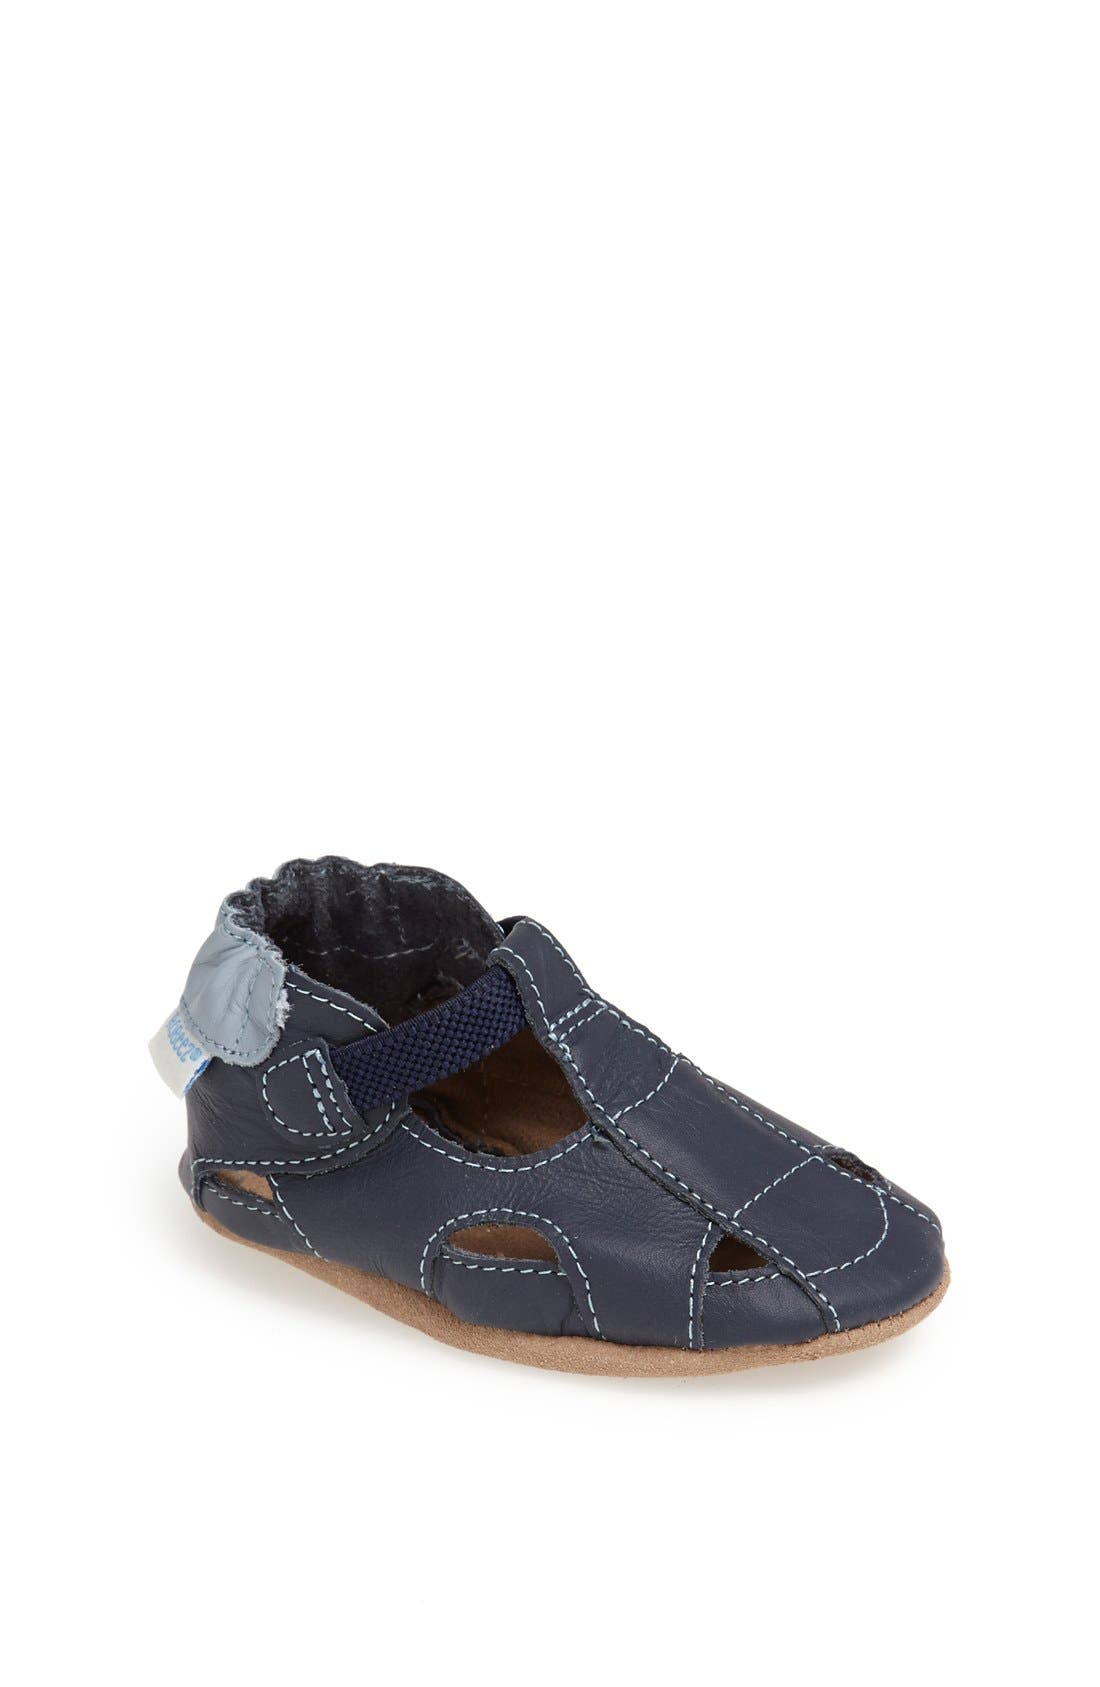 Fisherman Sandal,                             Main thumbnail 1, color,                             Navy